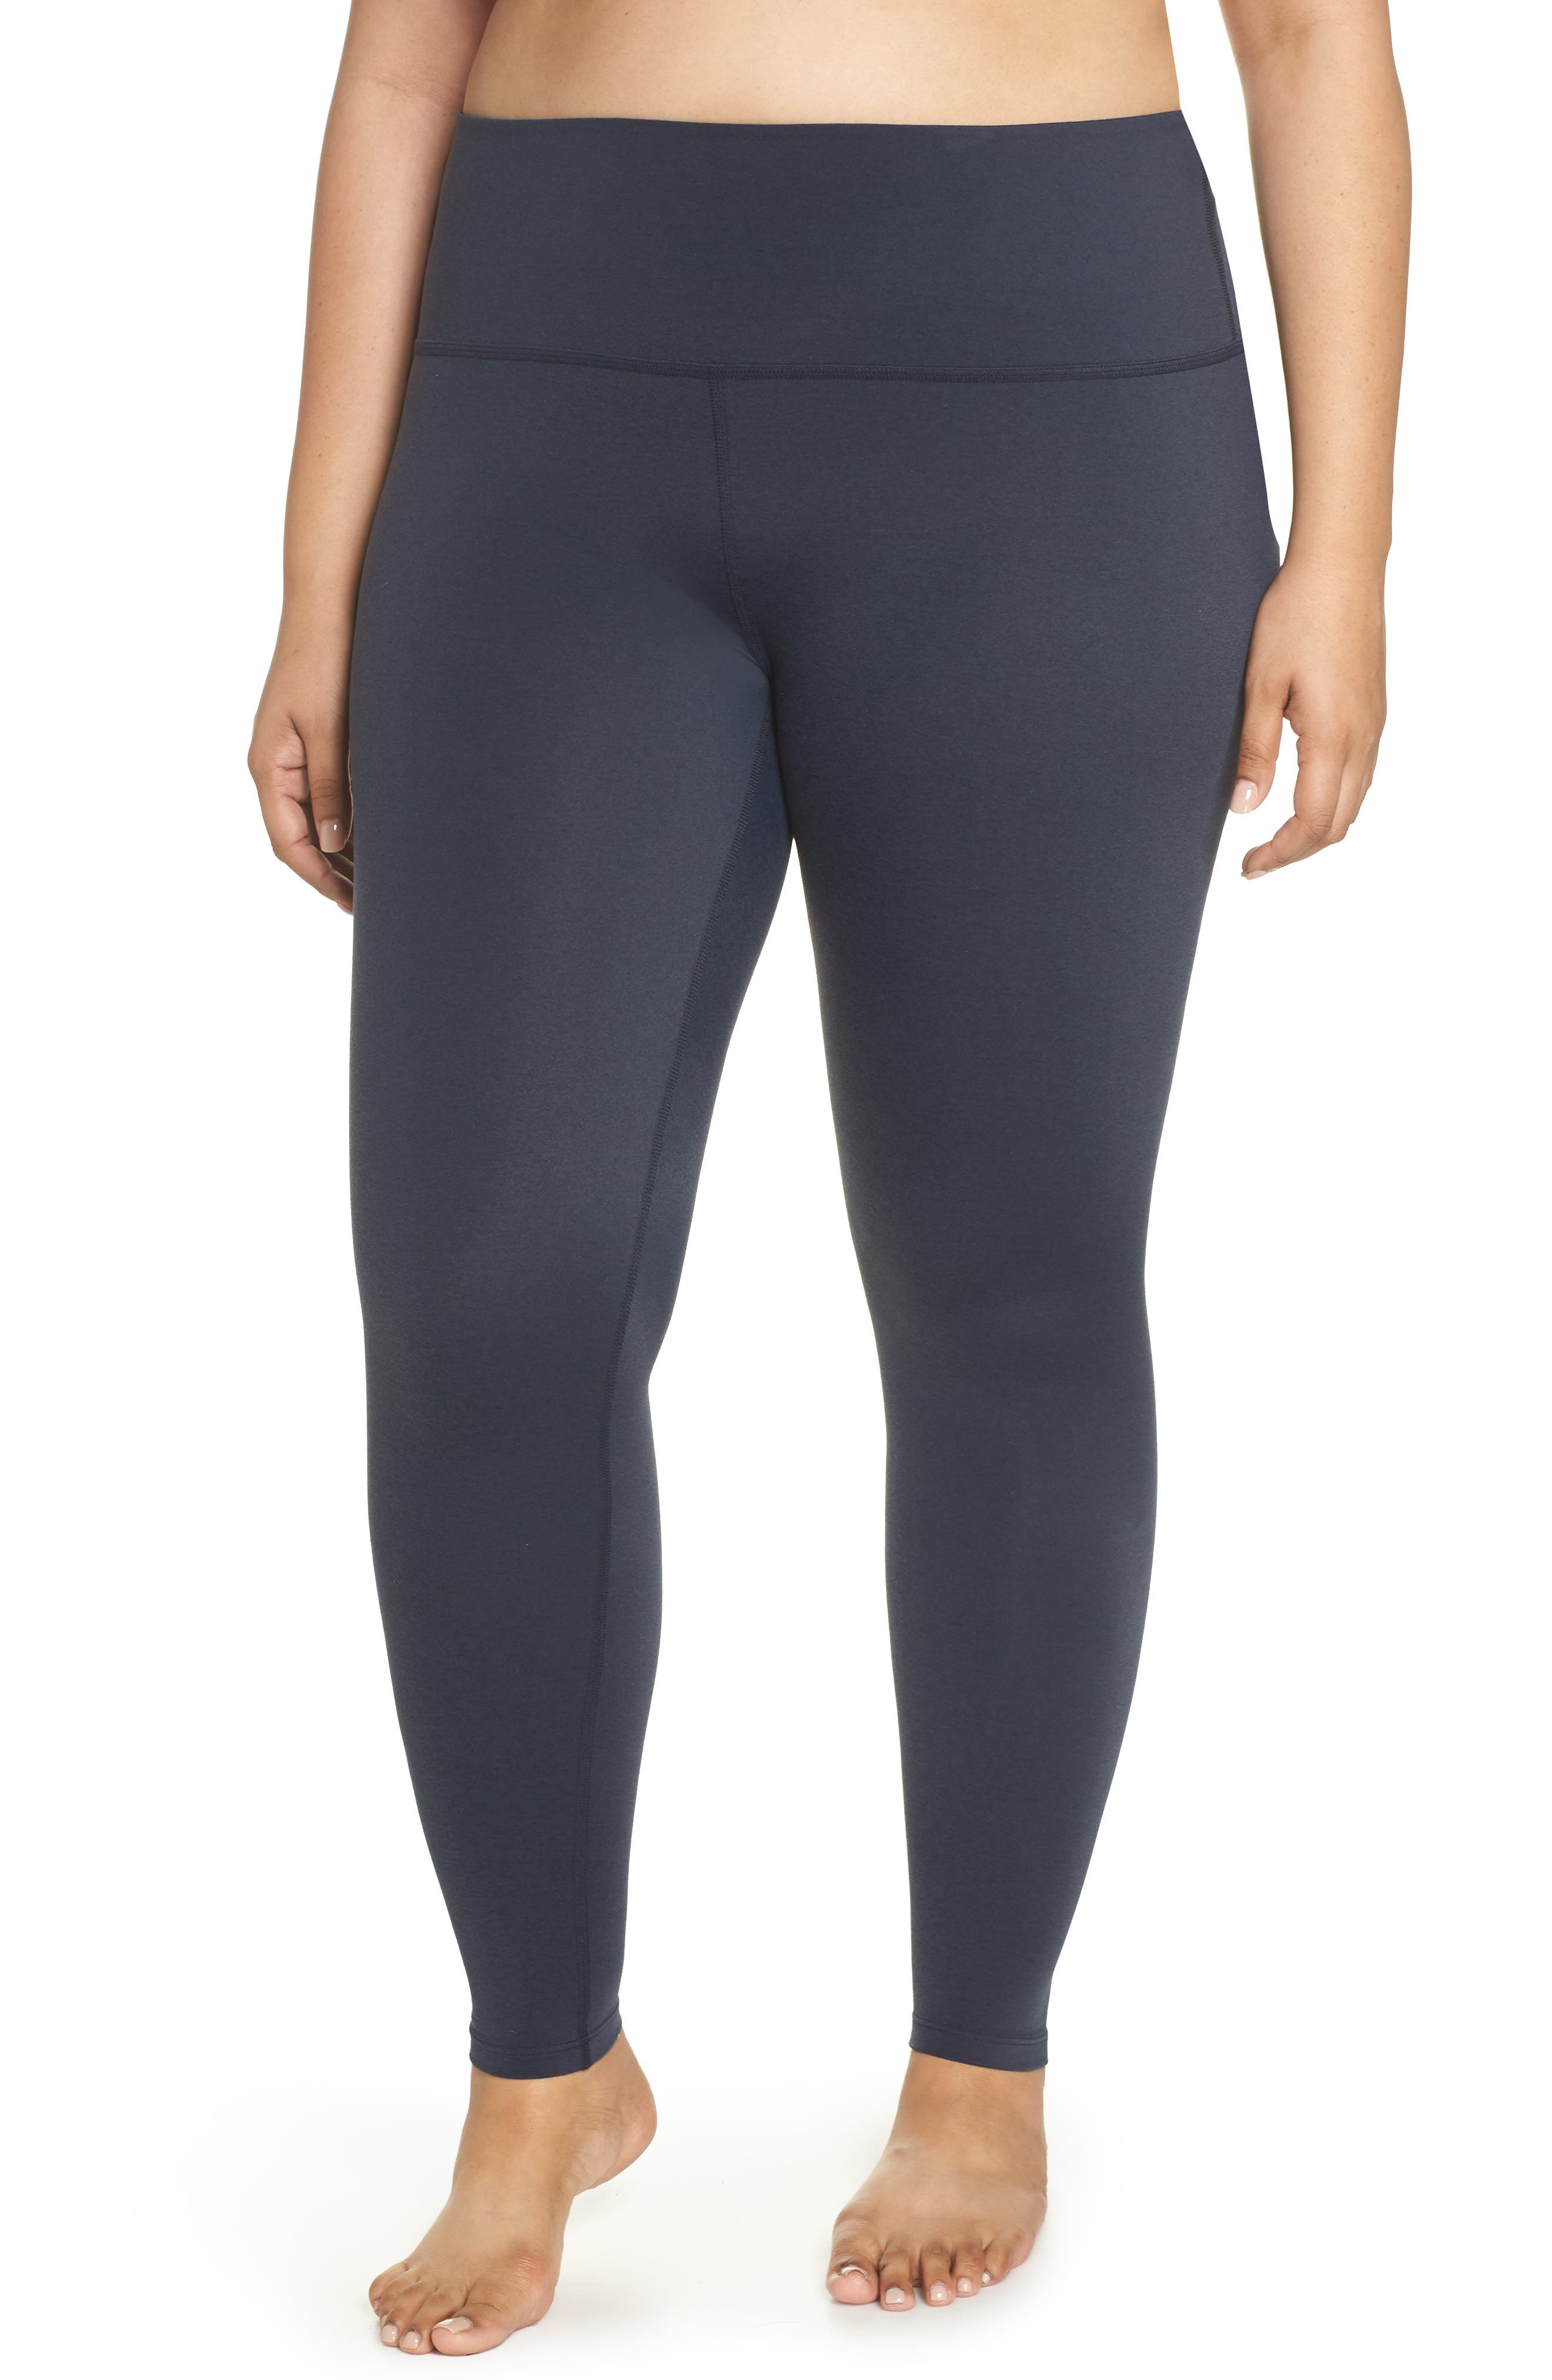 Plush High Waist Leggings,                         Main,                         color, NOCTURNAL NAVY HEATHER